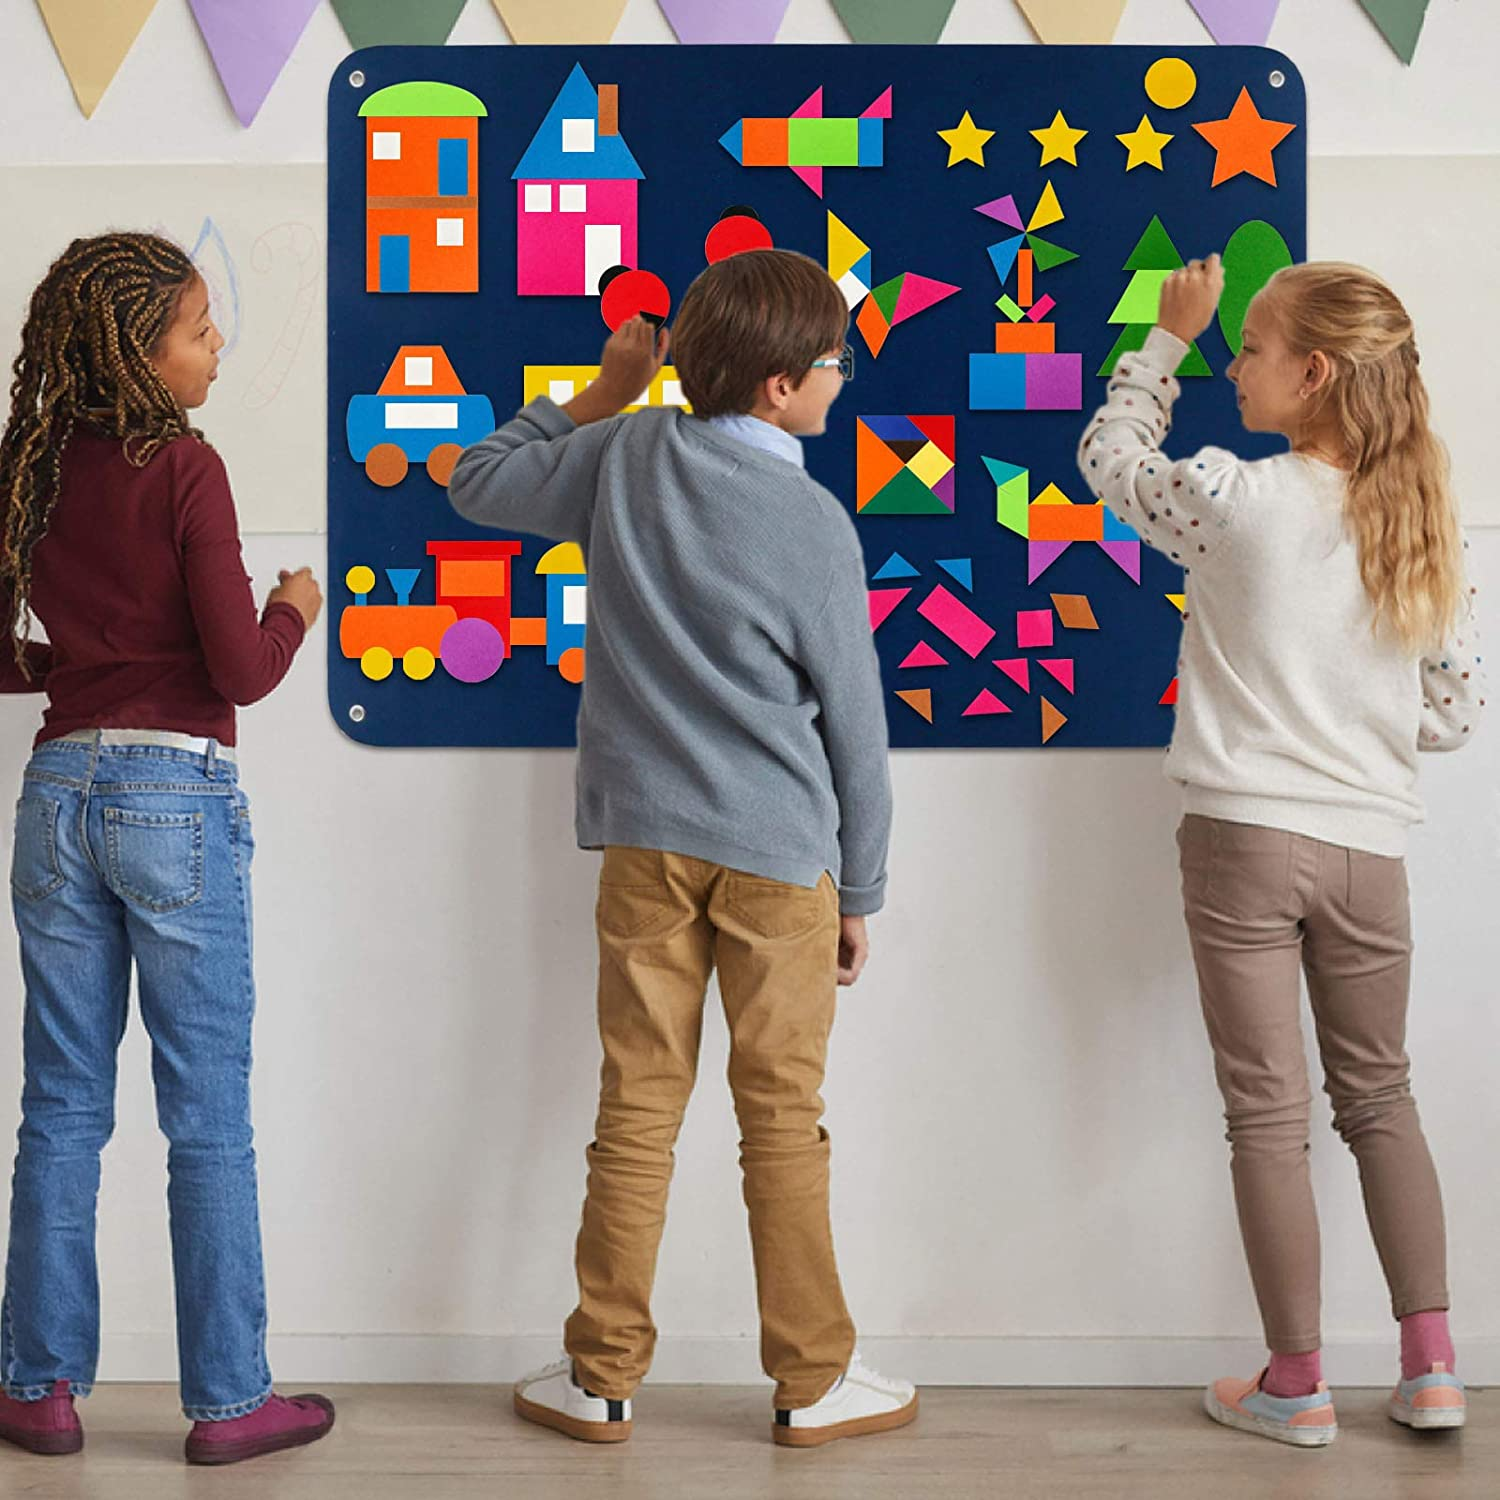 Large Wall Hang Interactive Game Kit Kids Pattern Blocks Felt Flannel-Boards Shapes Colors Sets for Toddlers 144 Pieces Tangram /& Patterns Puzzle Education Toy